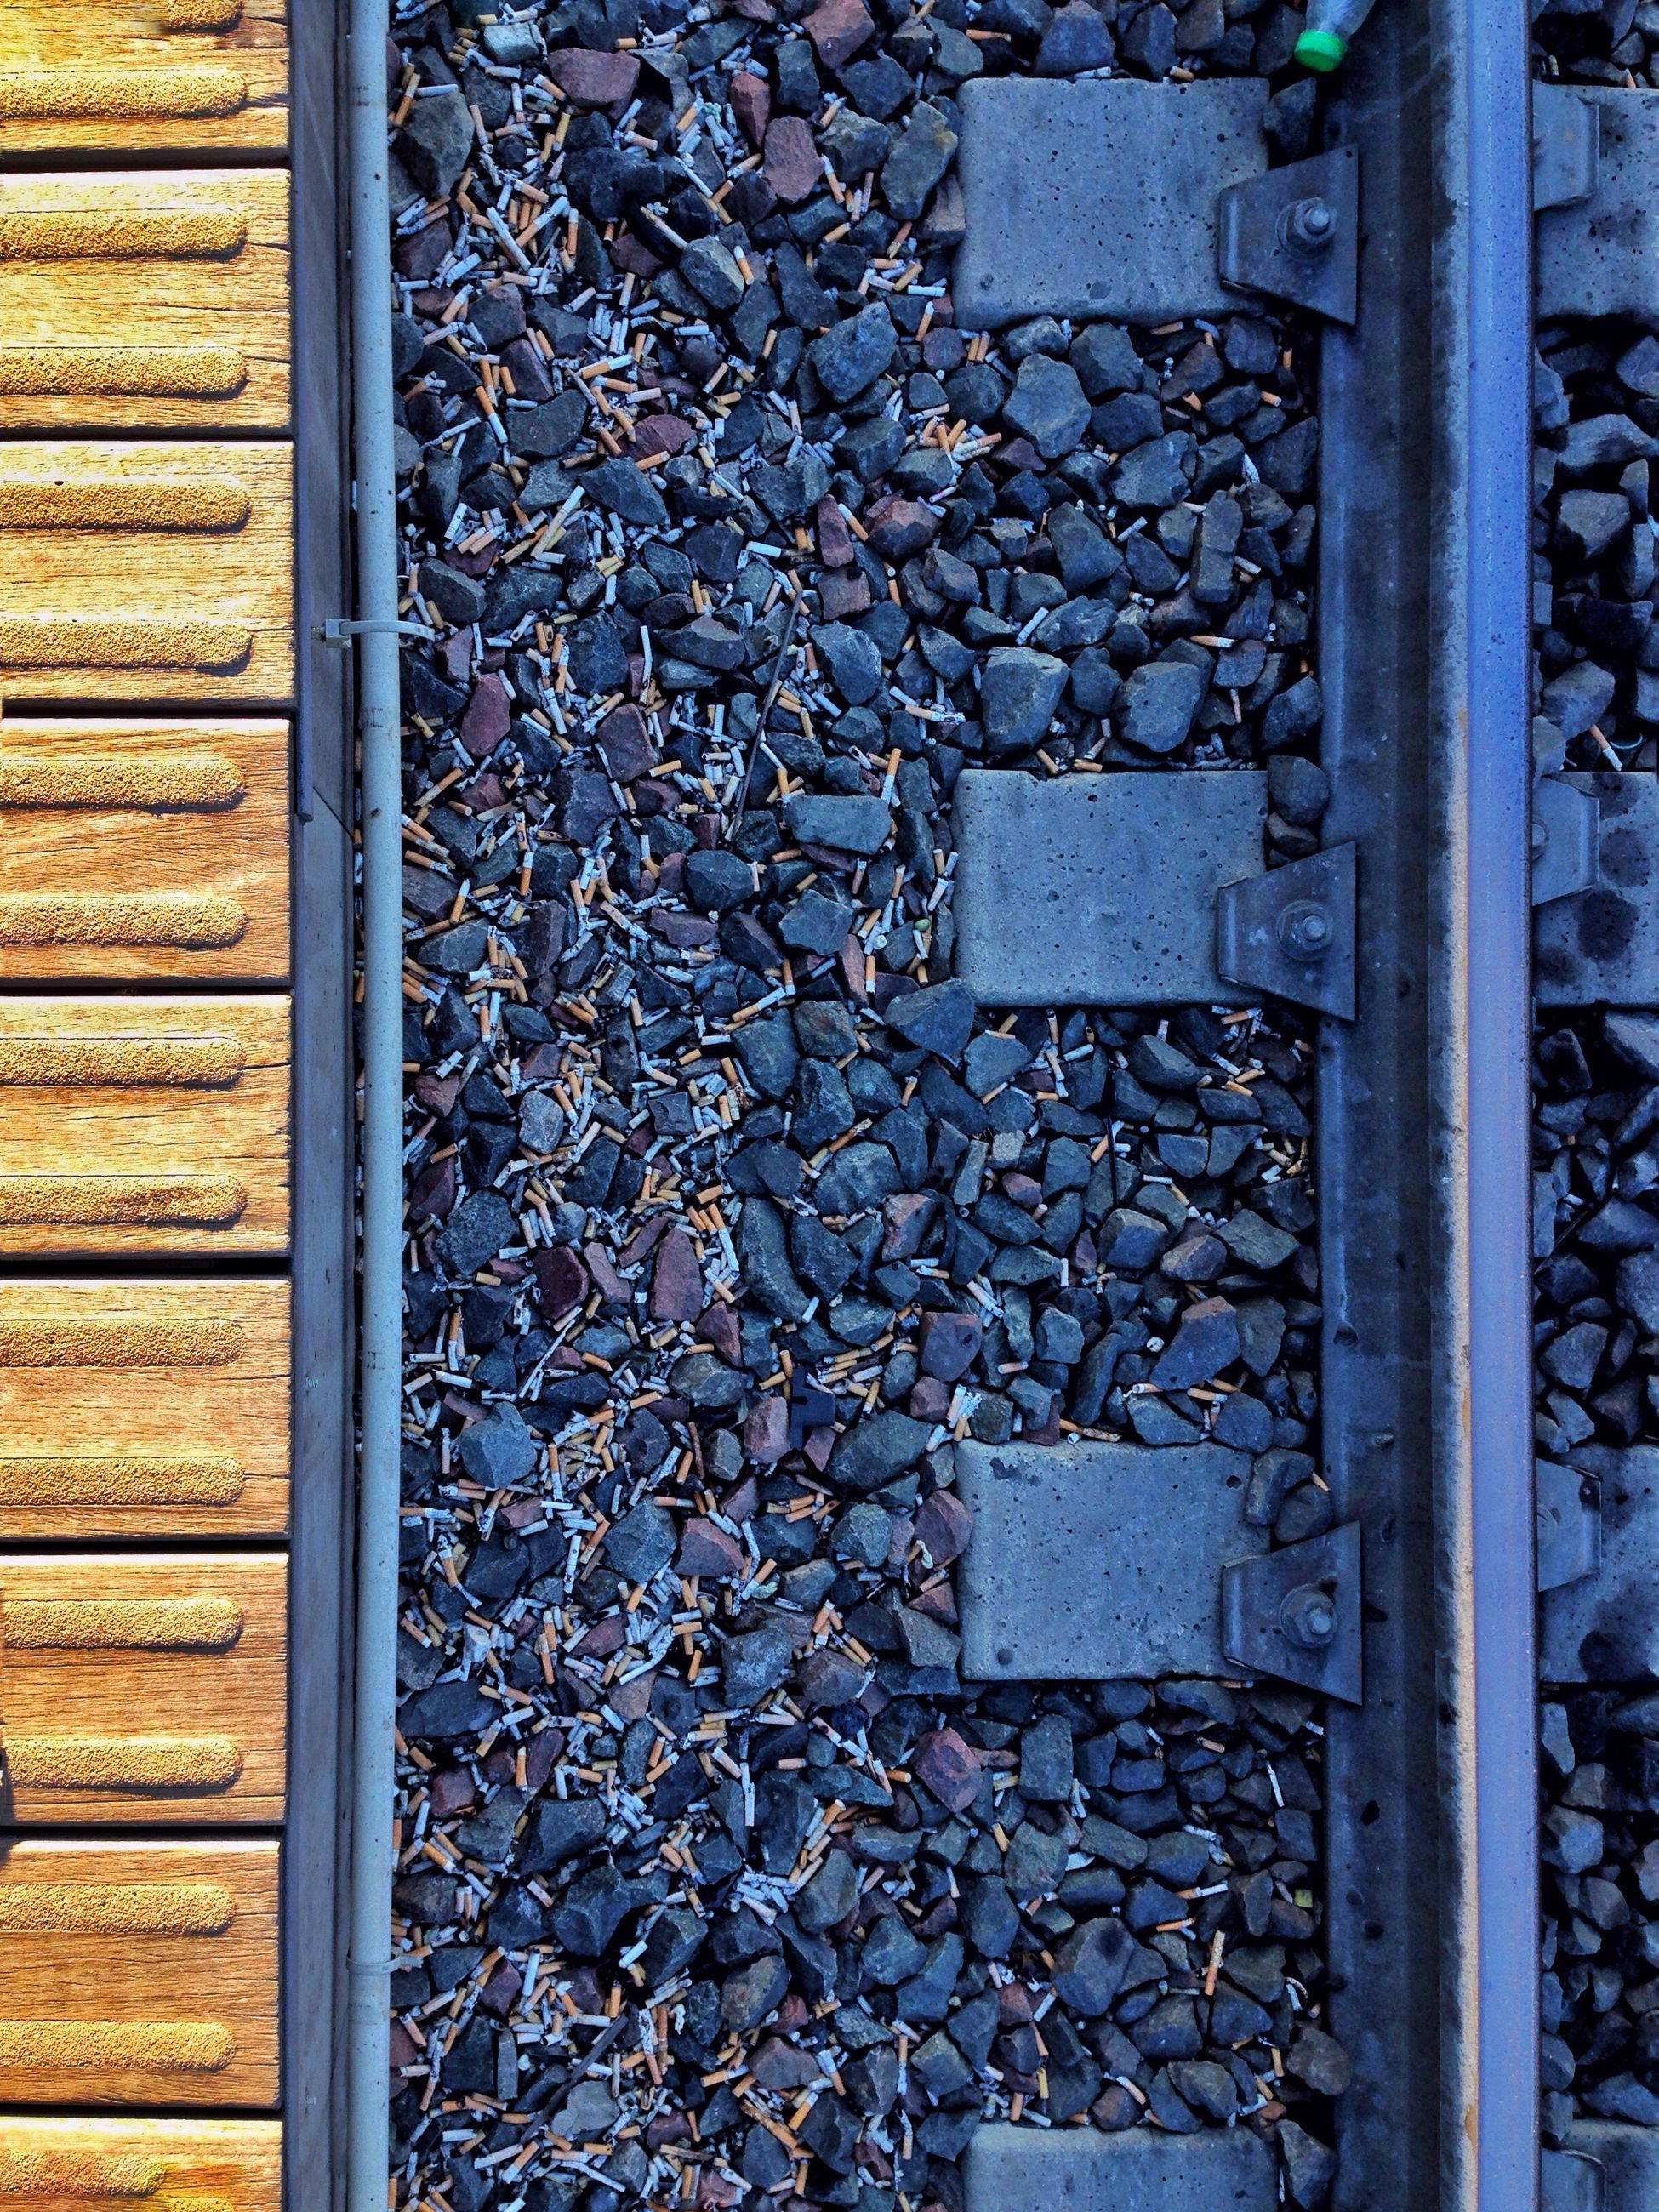 metal, stone - object, railroad track, full frame, old, metallic, weathered, rusty, backgrounds, high angle view, close-up, textured, day, wall - building feature, outdoors, no people, built structure, abandoned, pattern, deterioration